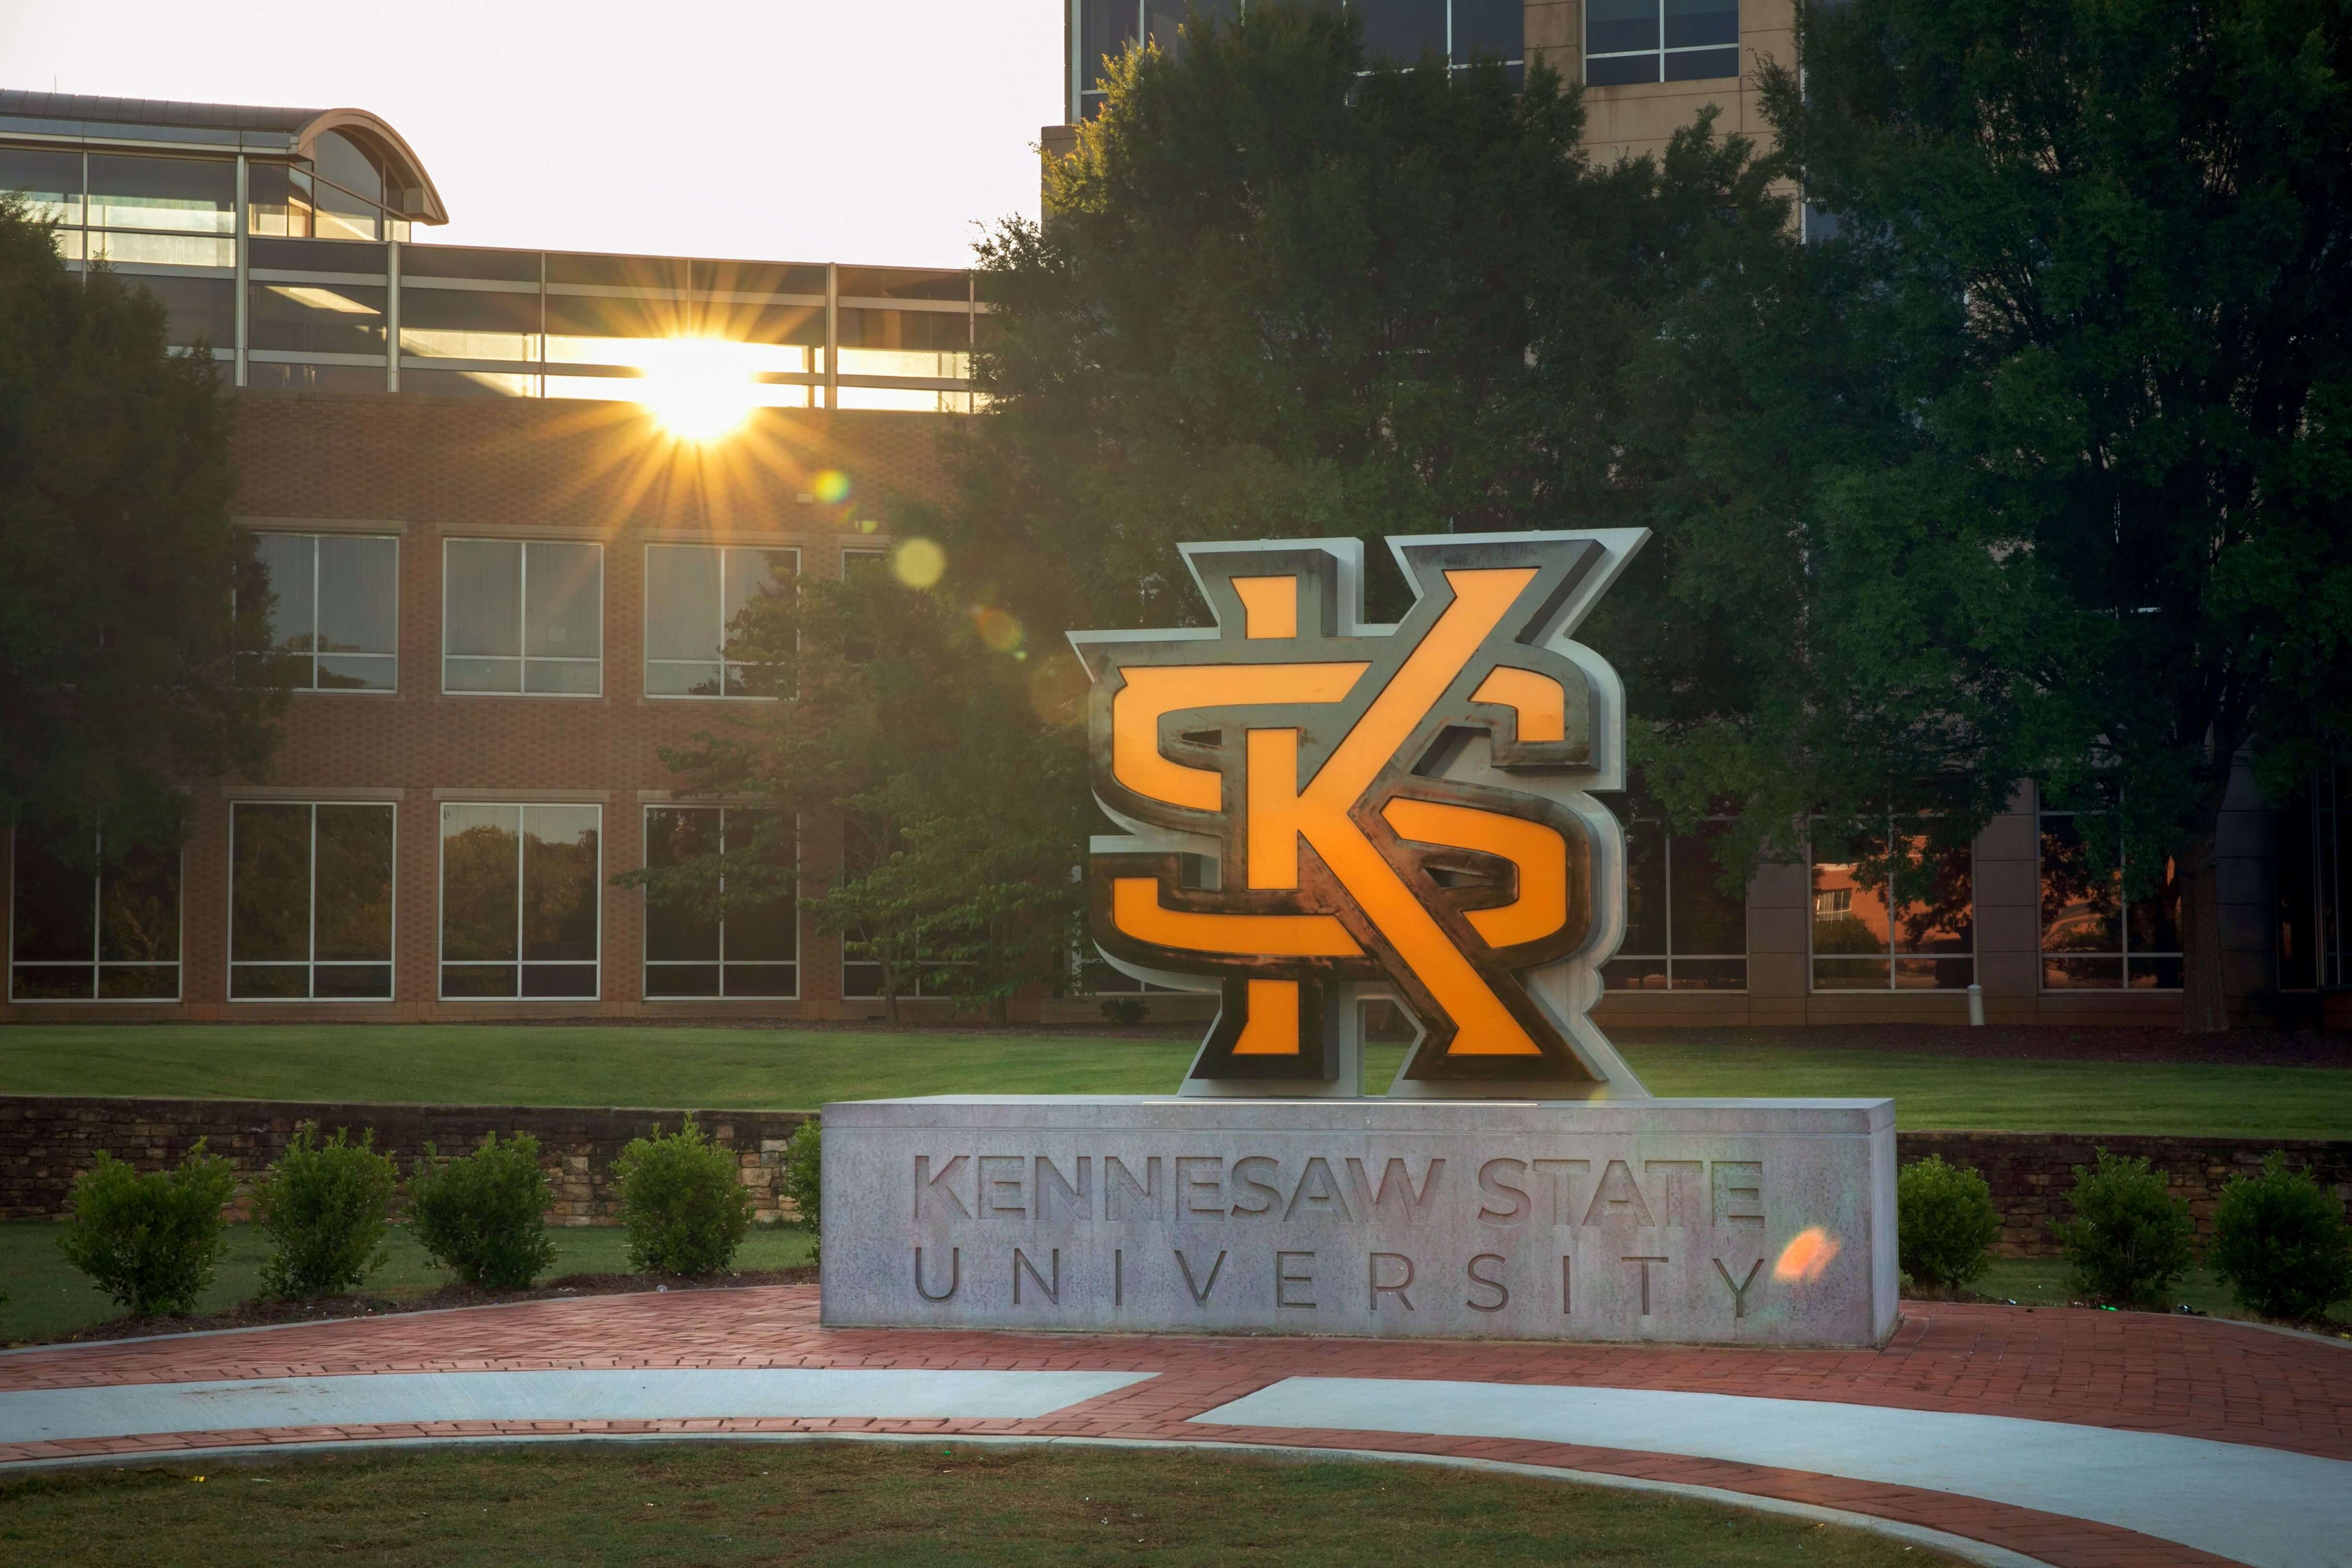 Kennesaw State University: Innovative, advanced degrees that open all the right doors